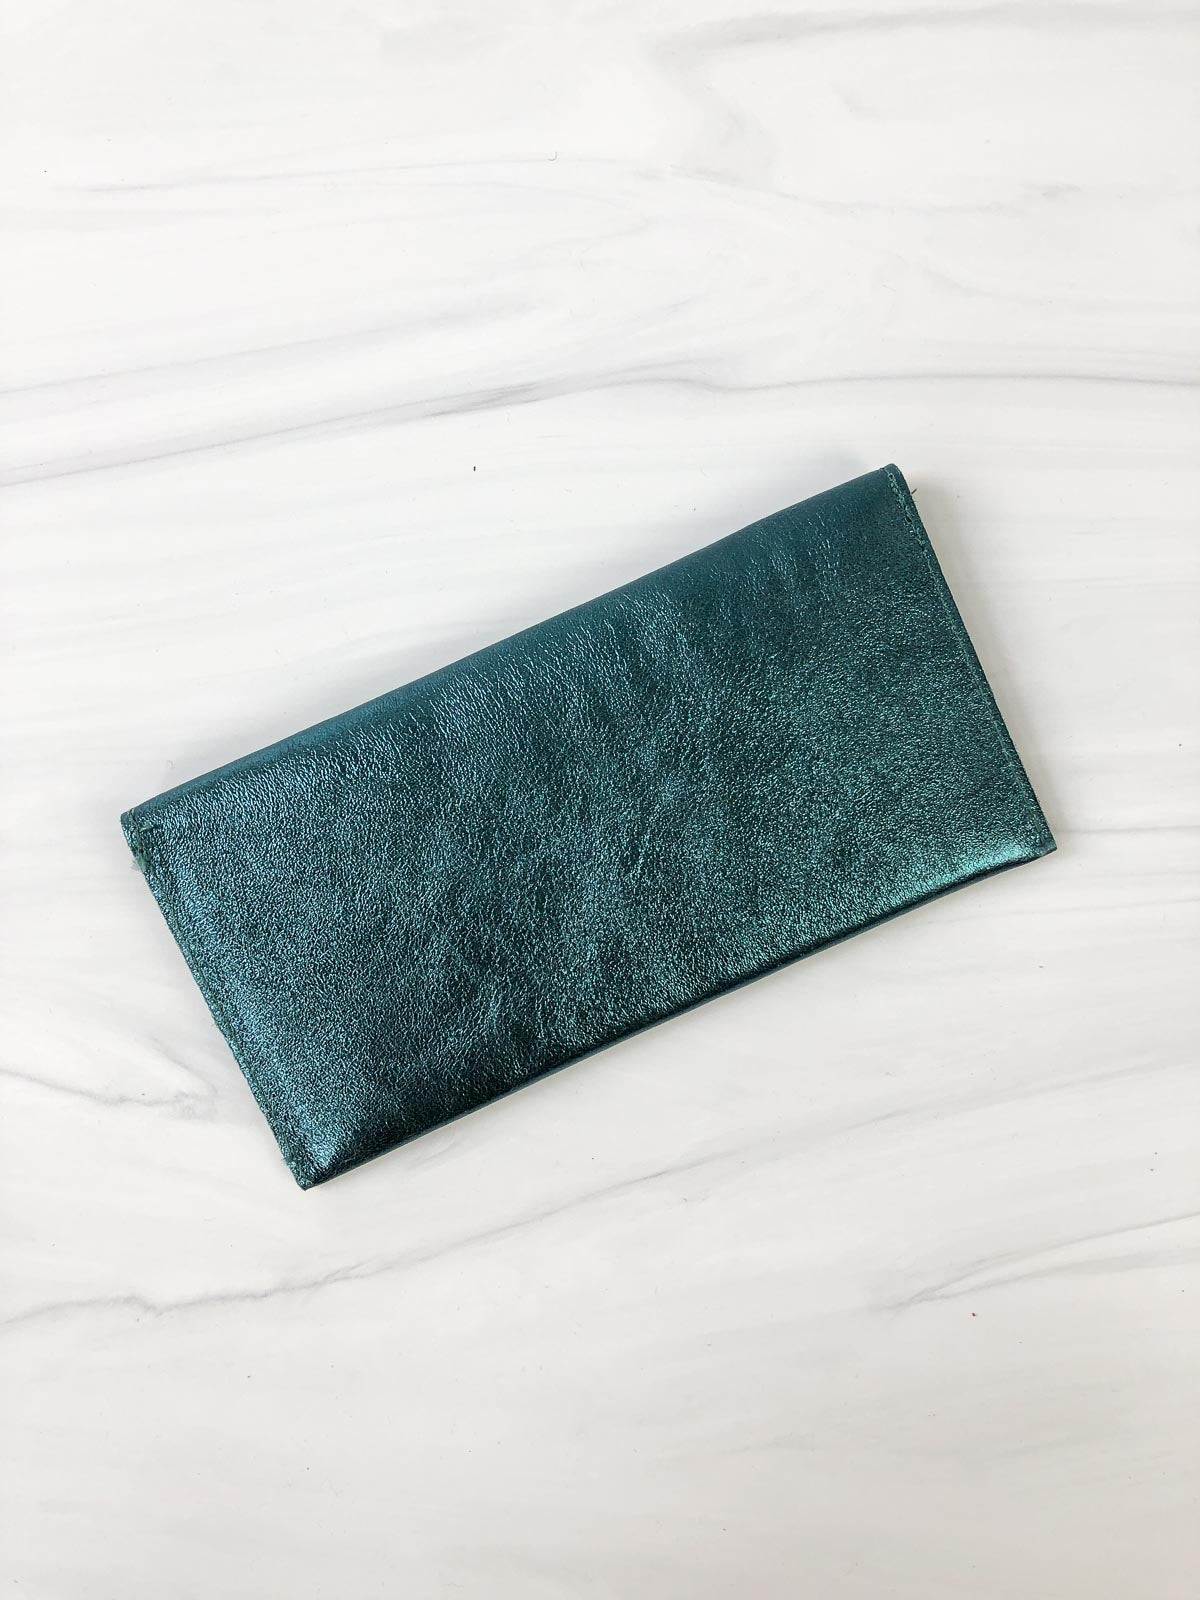 Jijou Capri Bobo Metallic Leather Wallet, Petrol - Statement Boutique